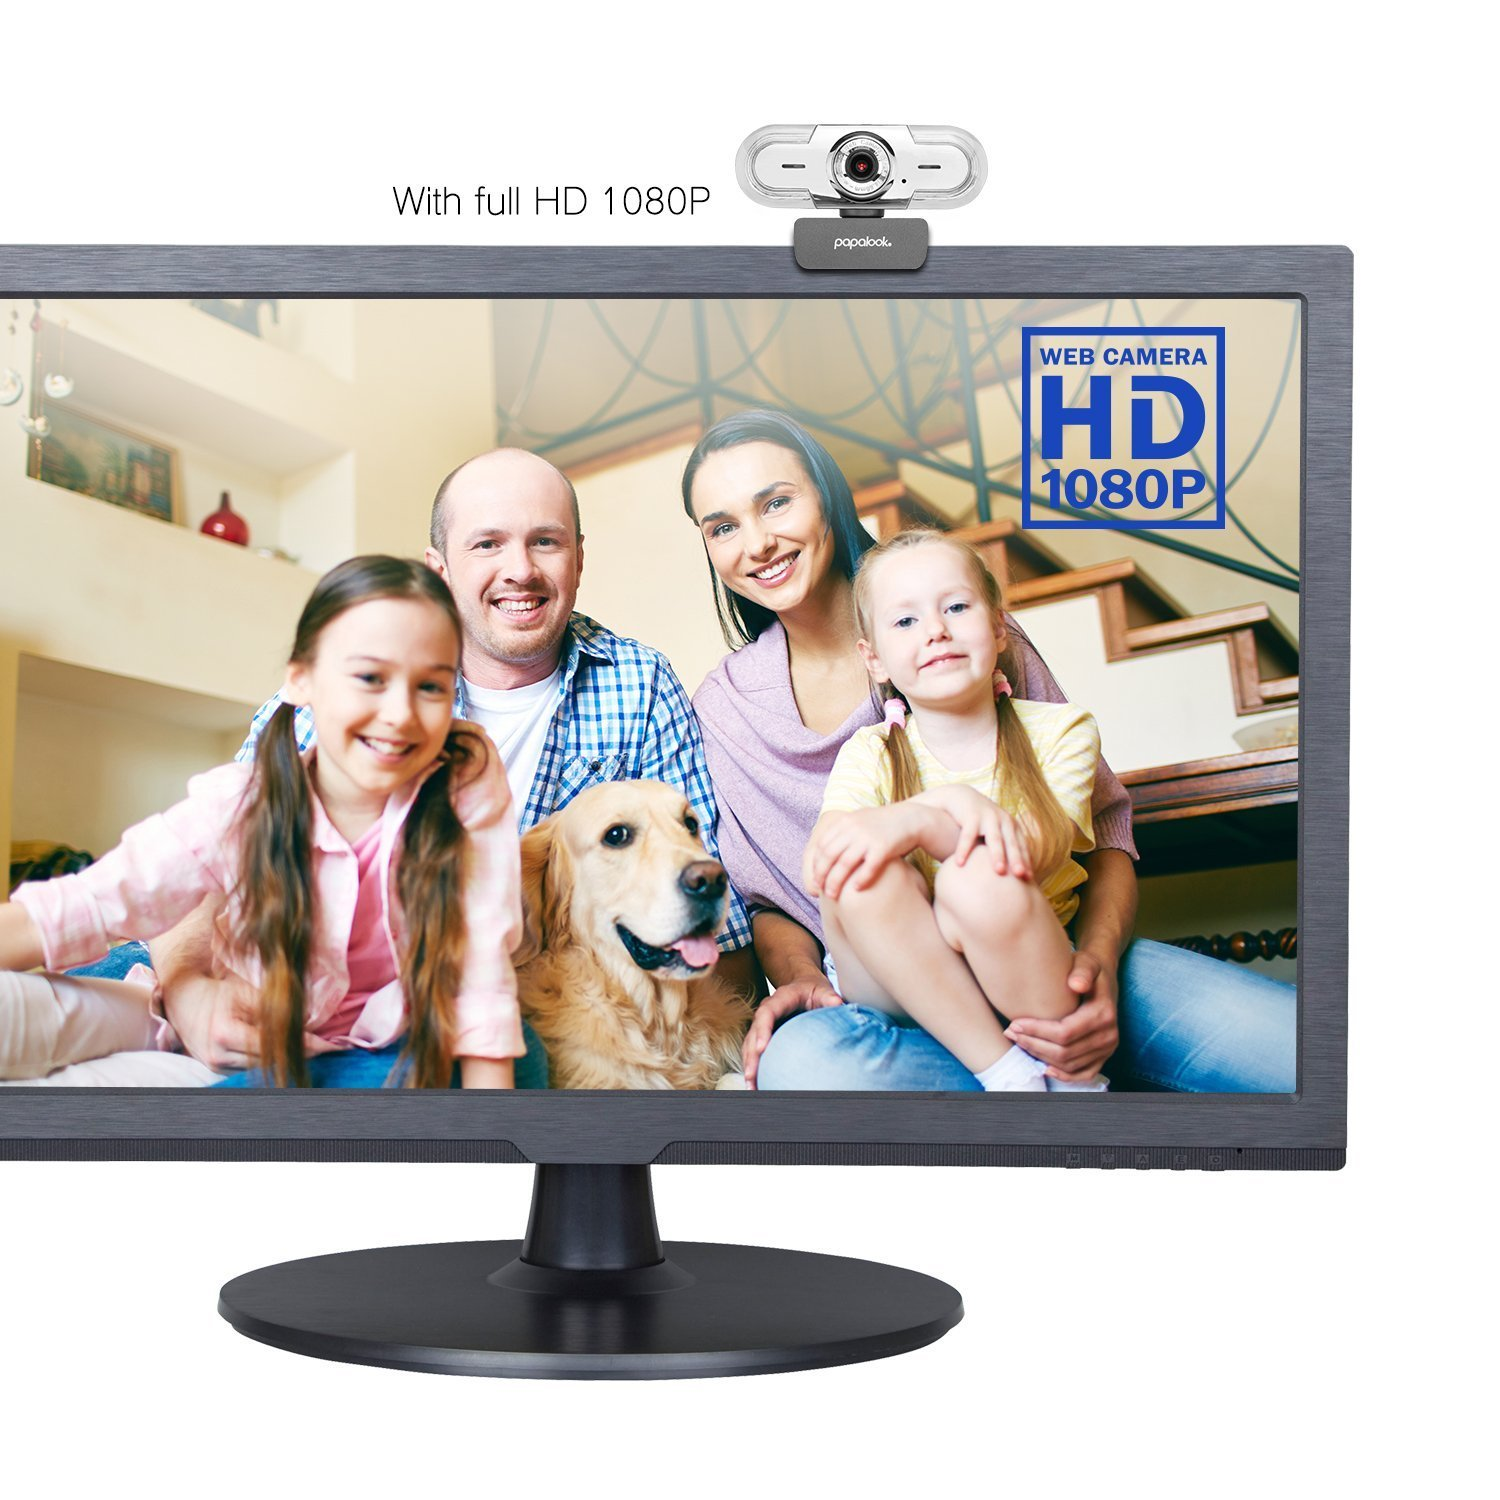 PAPALOOK 1080P HD Webcam, USB PC Computer Camera PA452 PRO Web Camera, Built-in Mic for Video Skype YouTube Compatible with Windows 7/8/10 by papalook (Image #3)